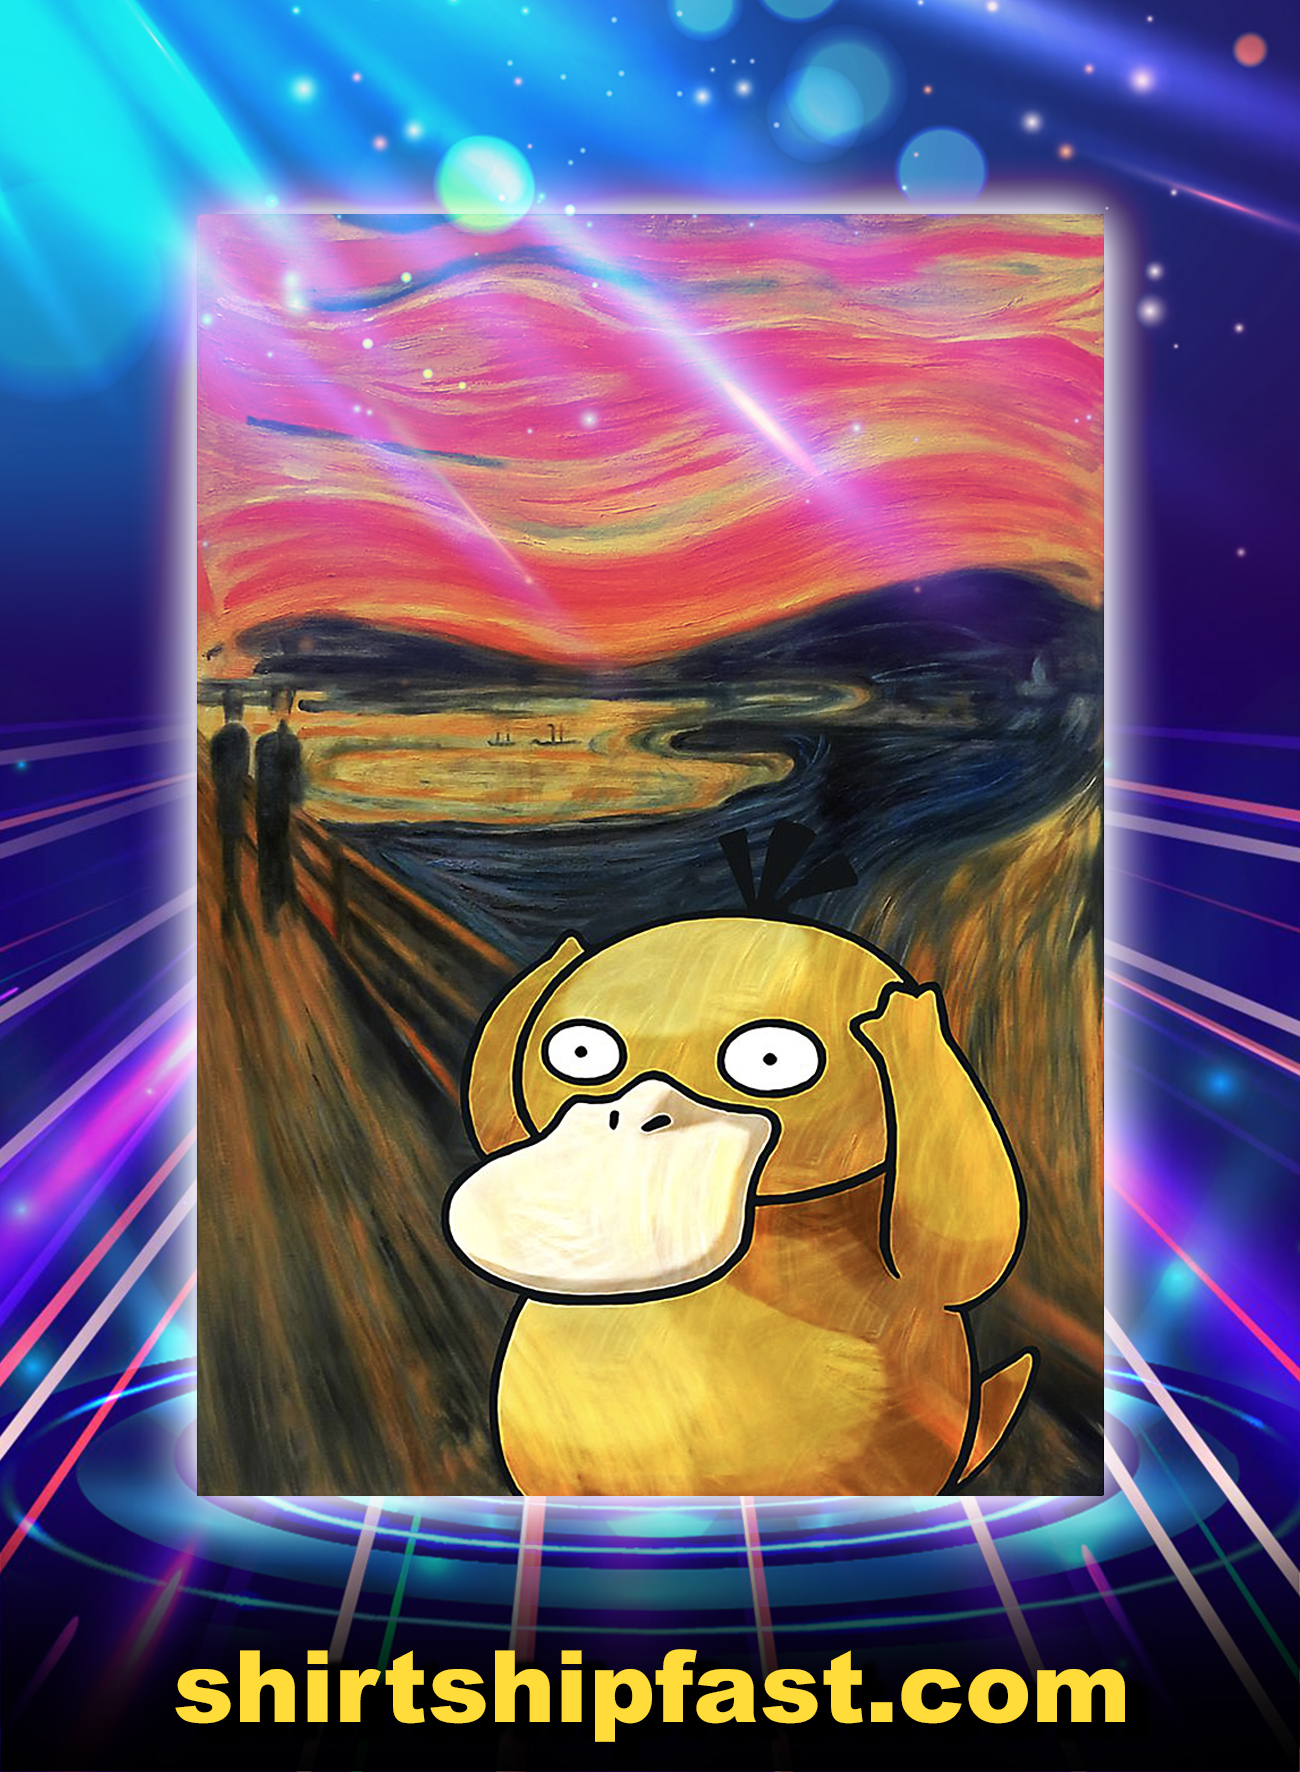 Koduck psyduck scream poster - A4